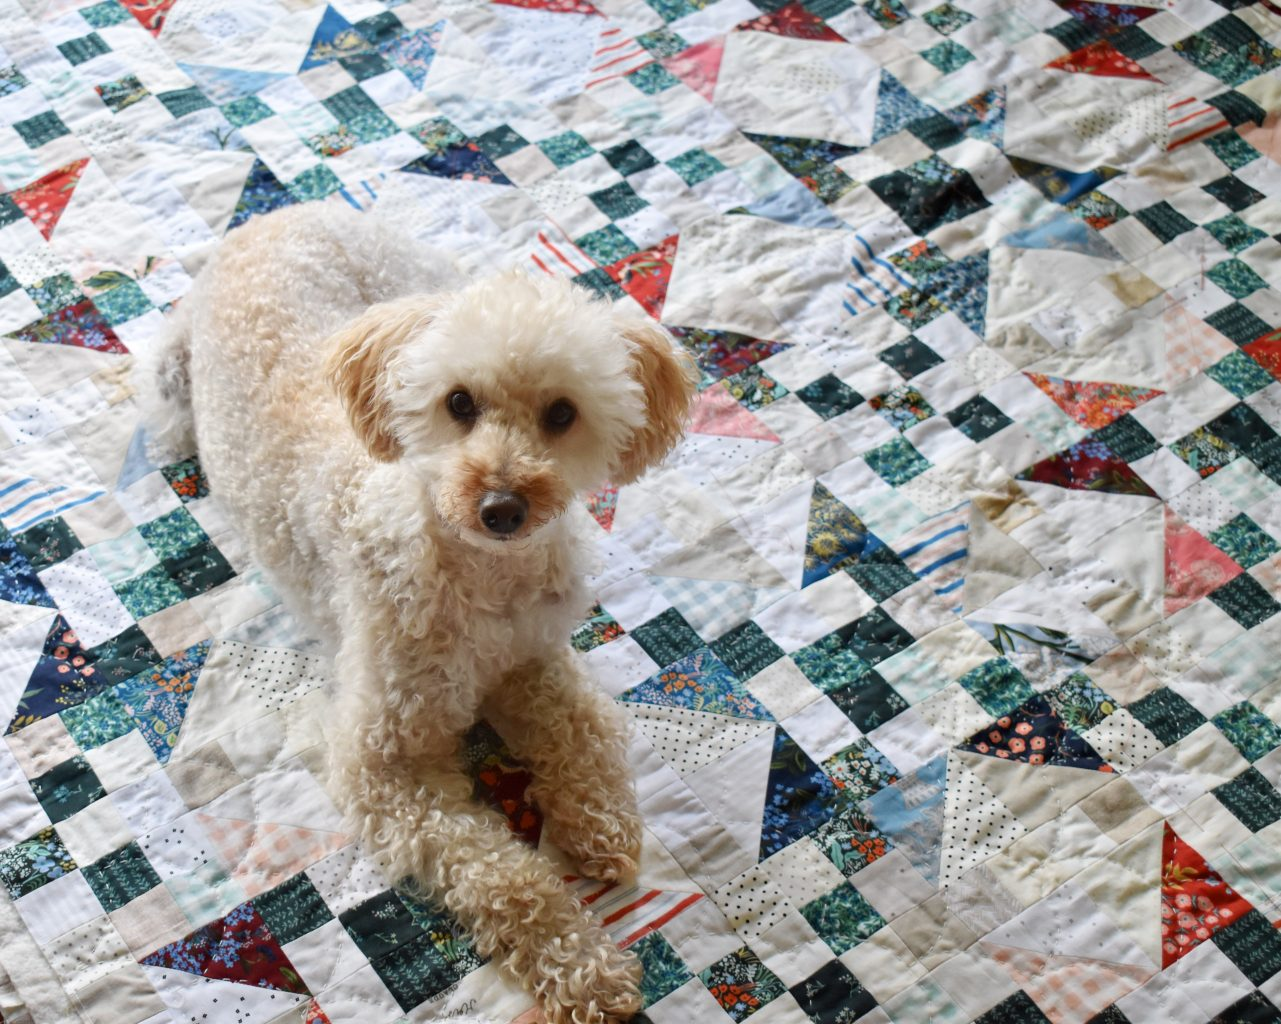 Riley the poodle enjoying this Starlite quilt